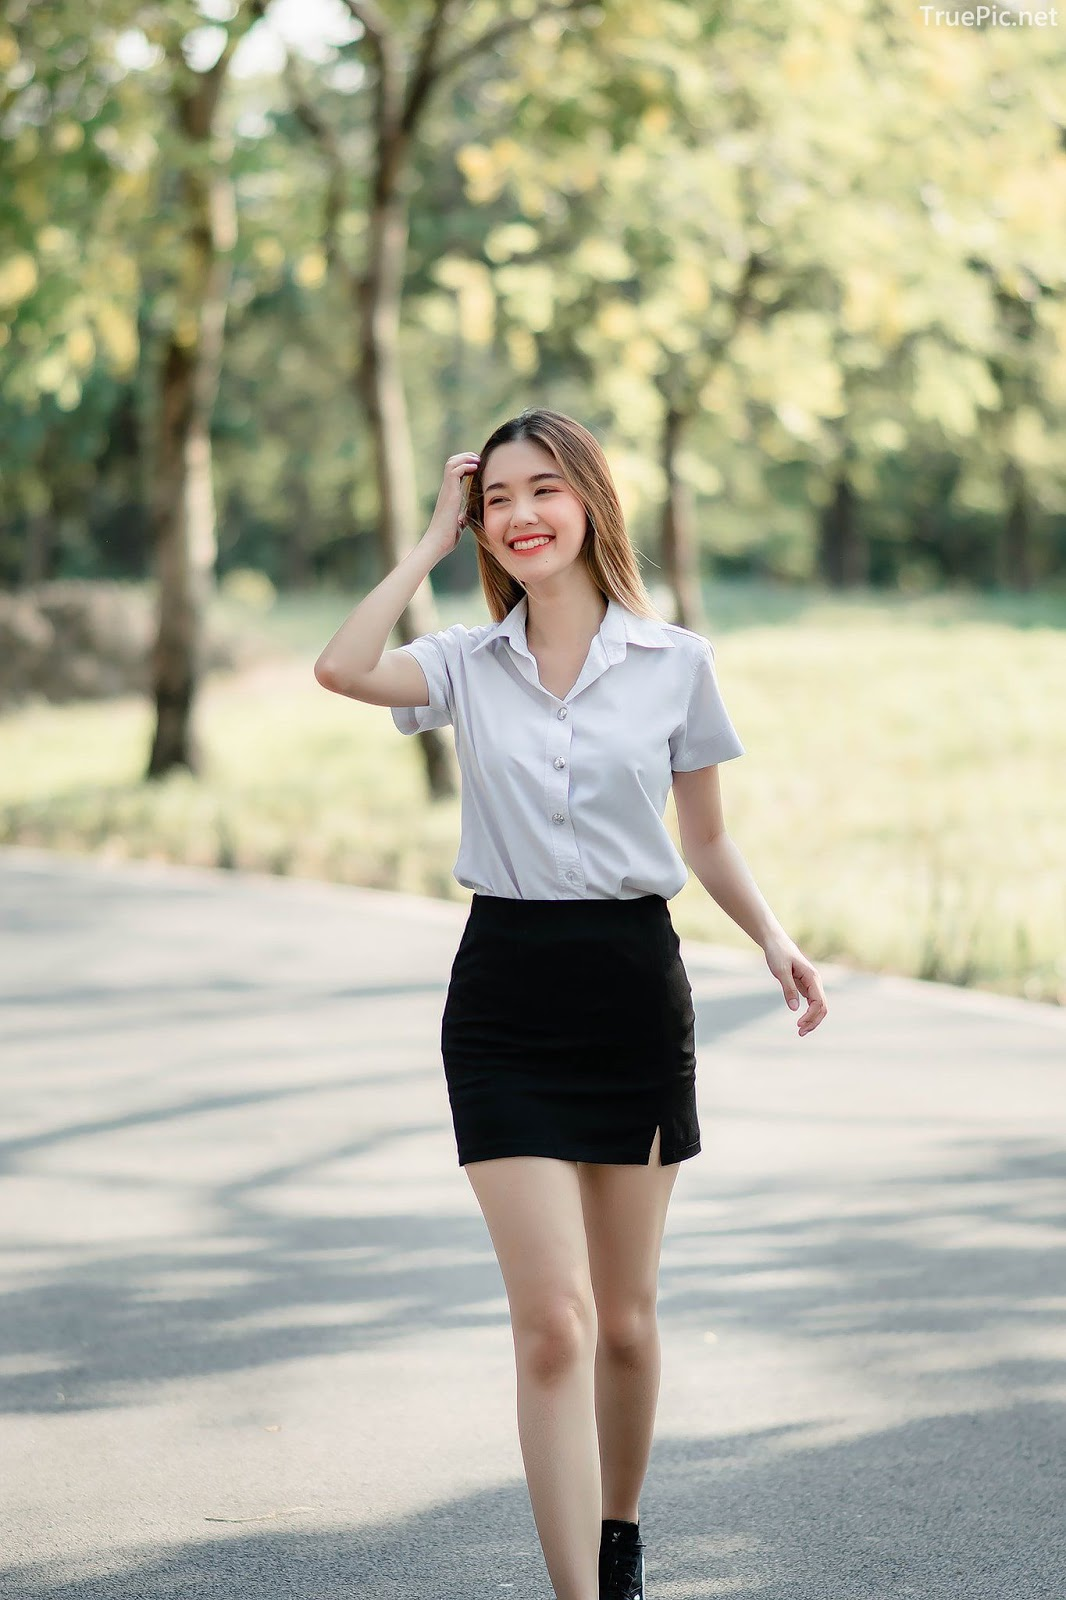 Image-Hot-Girl-Thailand-Pitcha-Srisattabuth-Cute-Student-With-a-Sweet-Smile-TruePic.net- Picture-10